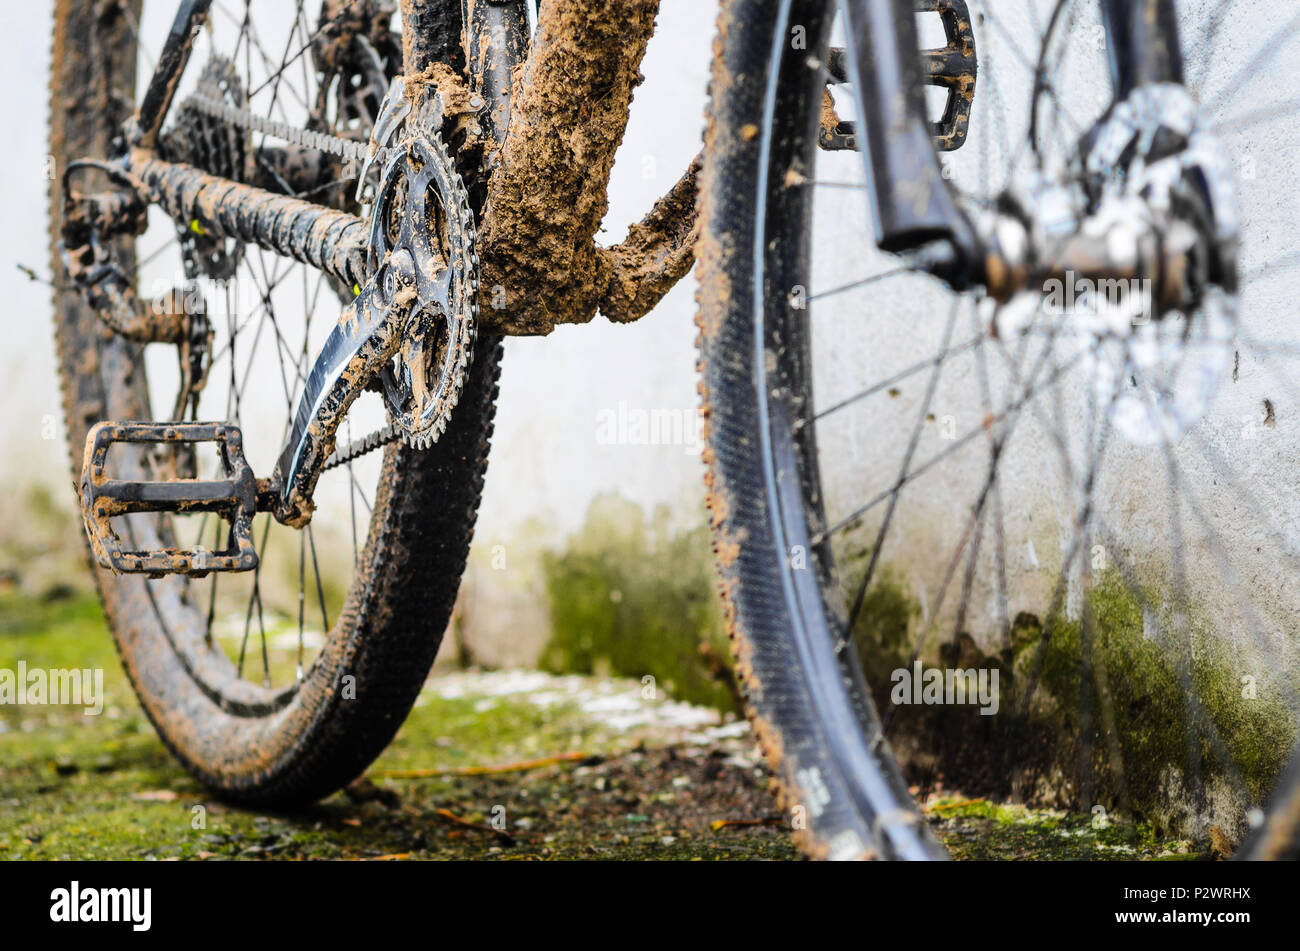 Dirty Transmission Of Mountain Bike After Riding In Bad Weather Stock Photo Alamy